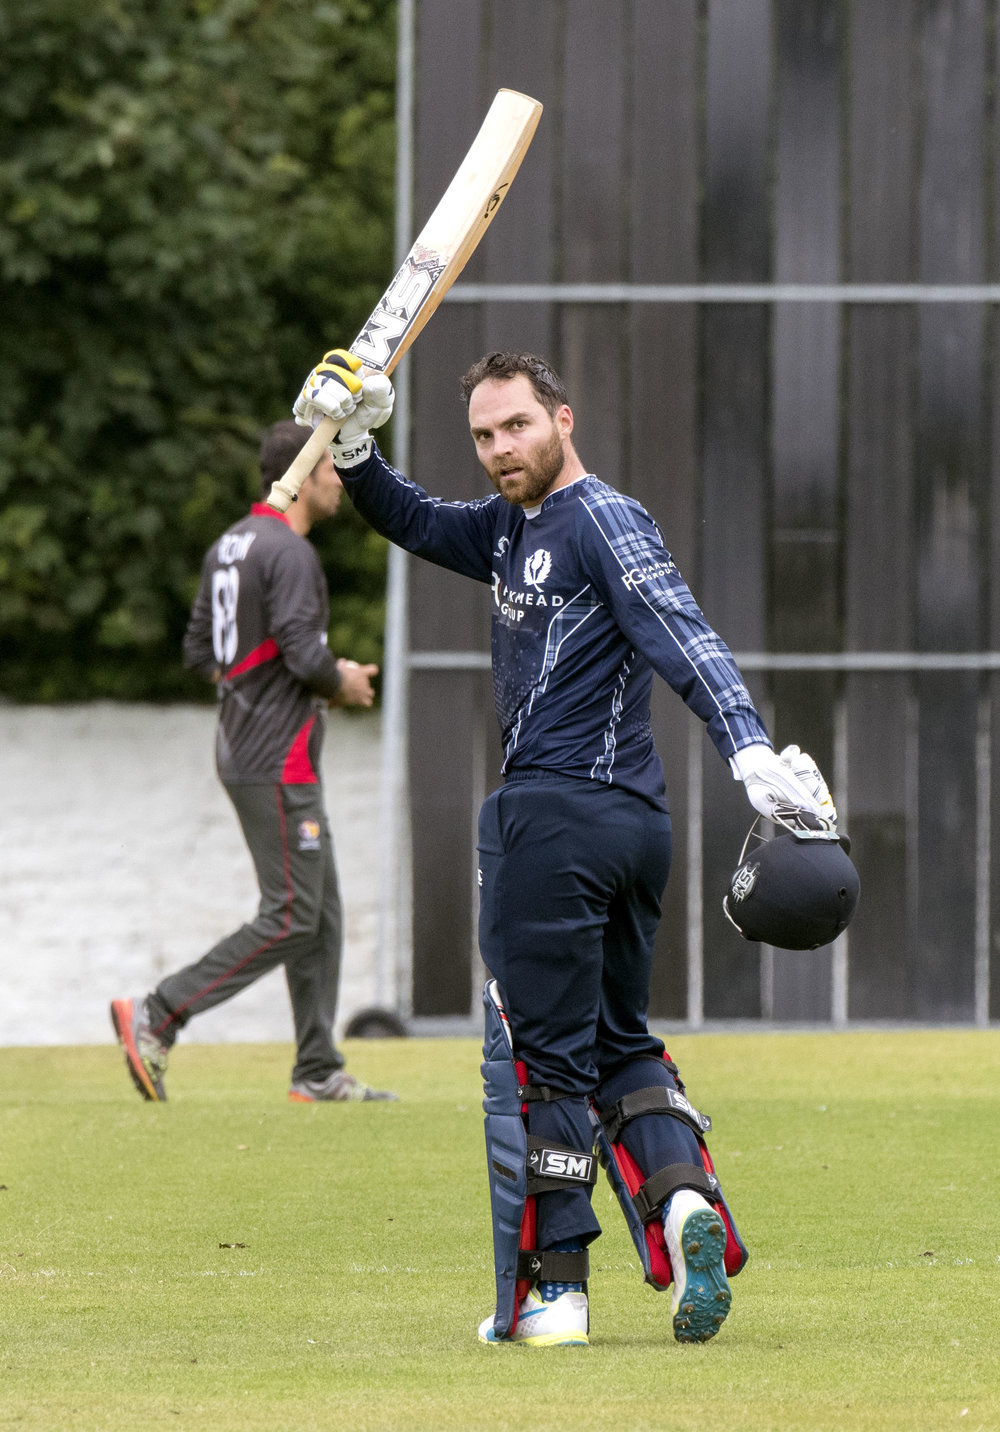 Picture from Cricket Scotland